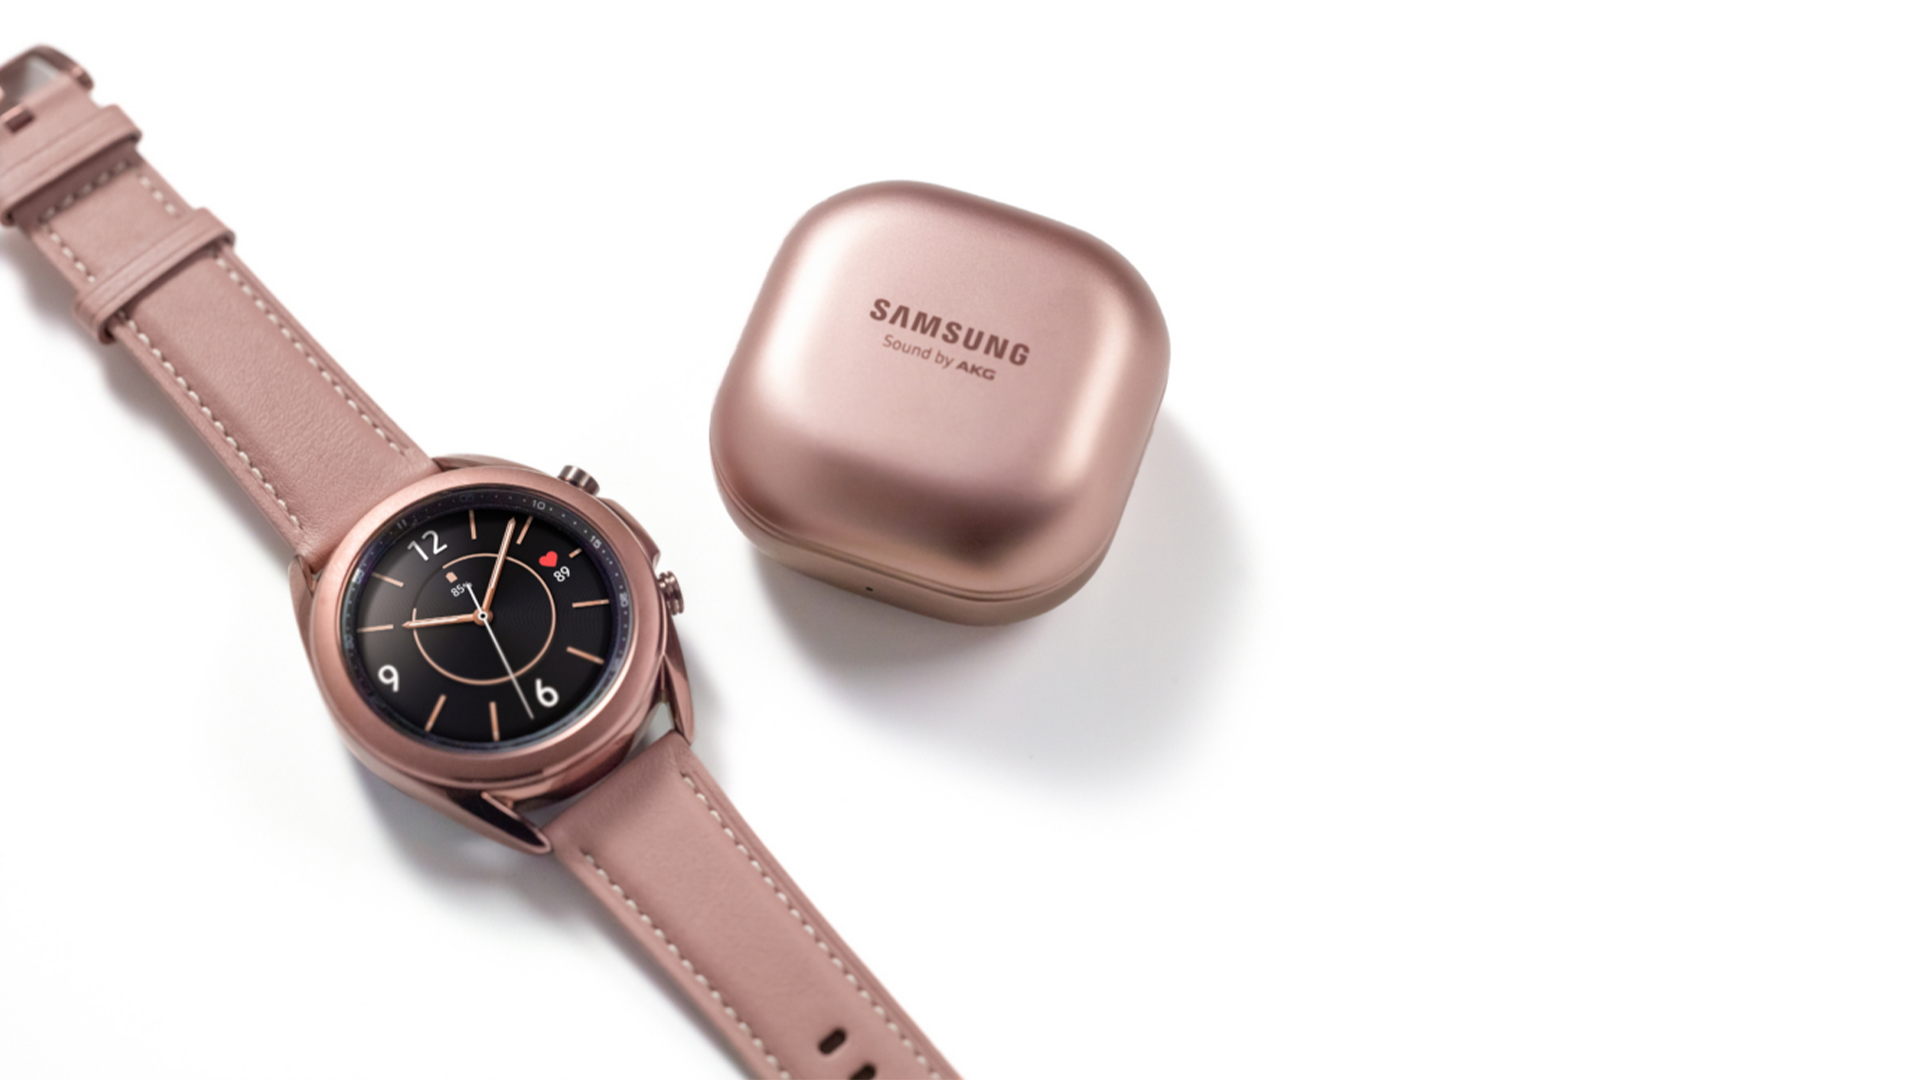 Samsung Galaxy Buds Live, Galaxy Watch 3 Launched in India: Price, Specs